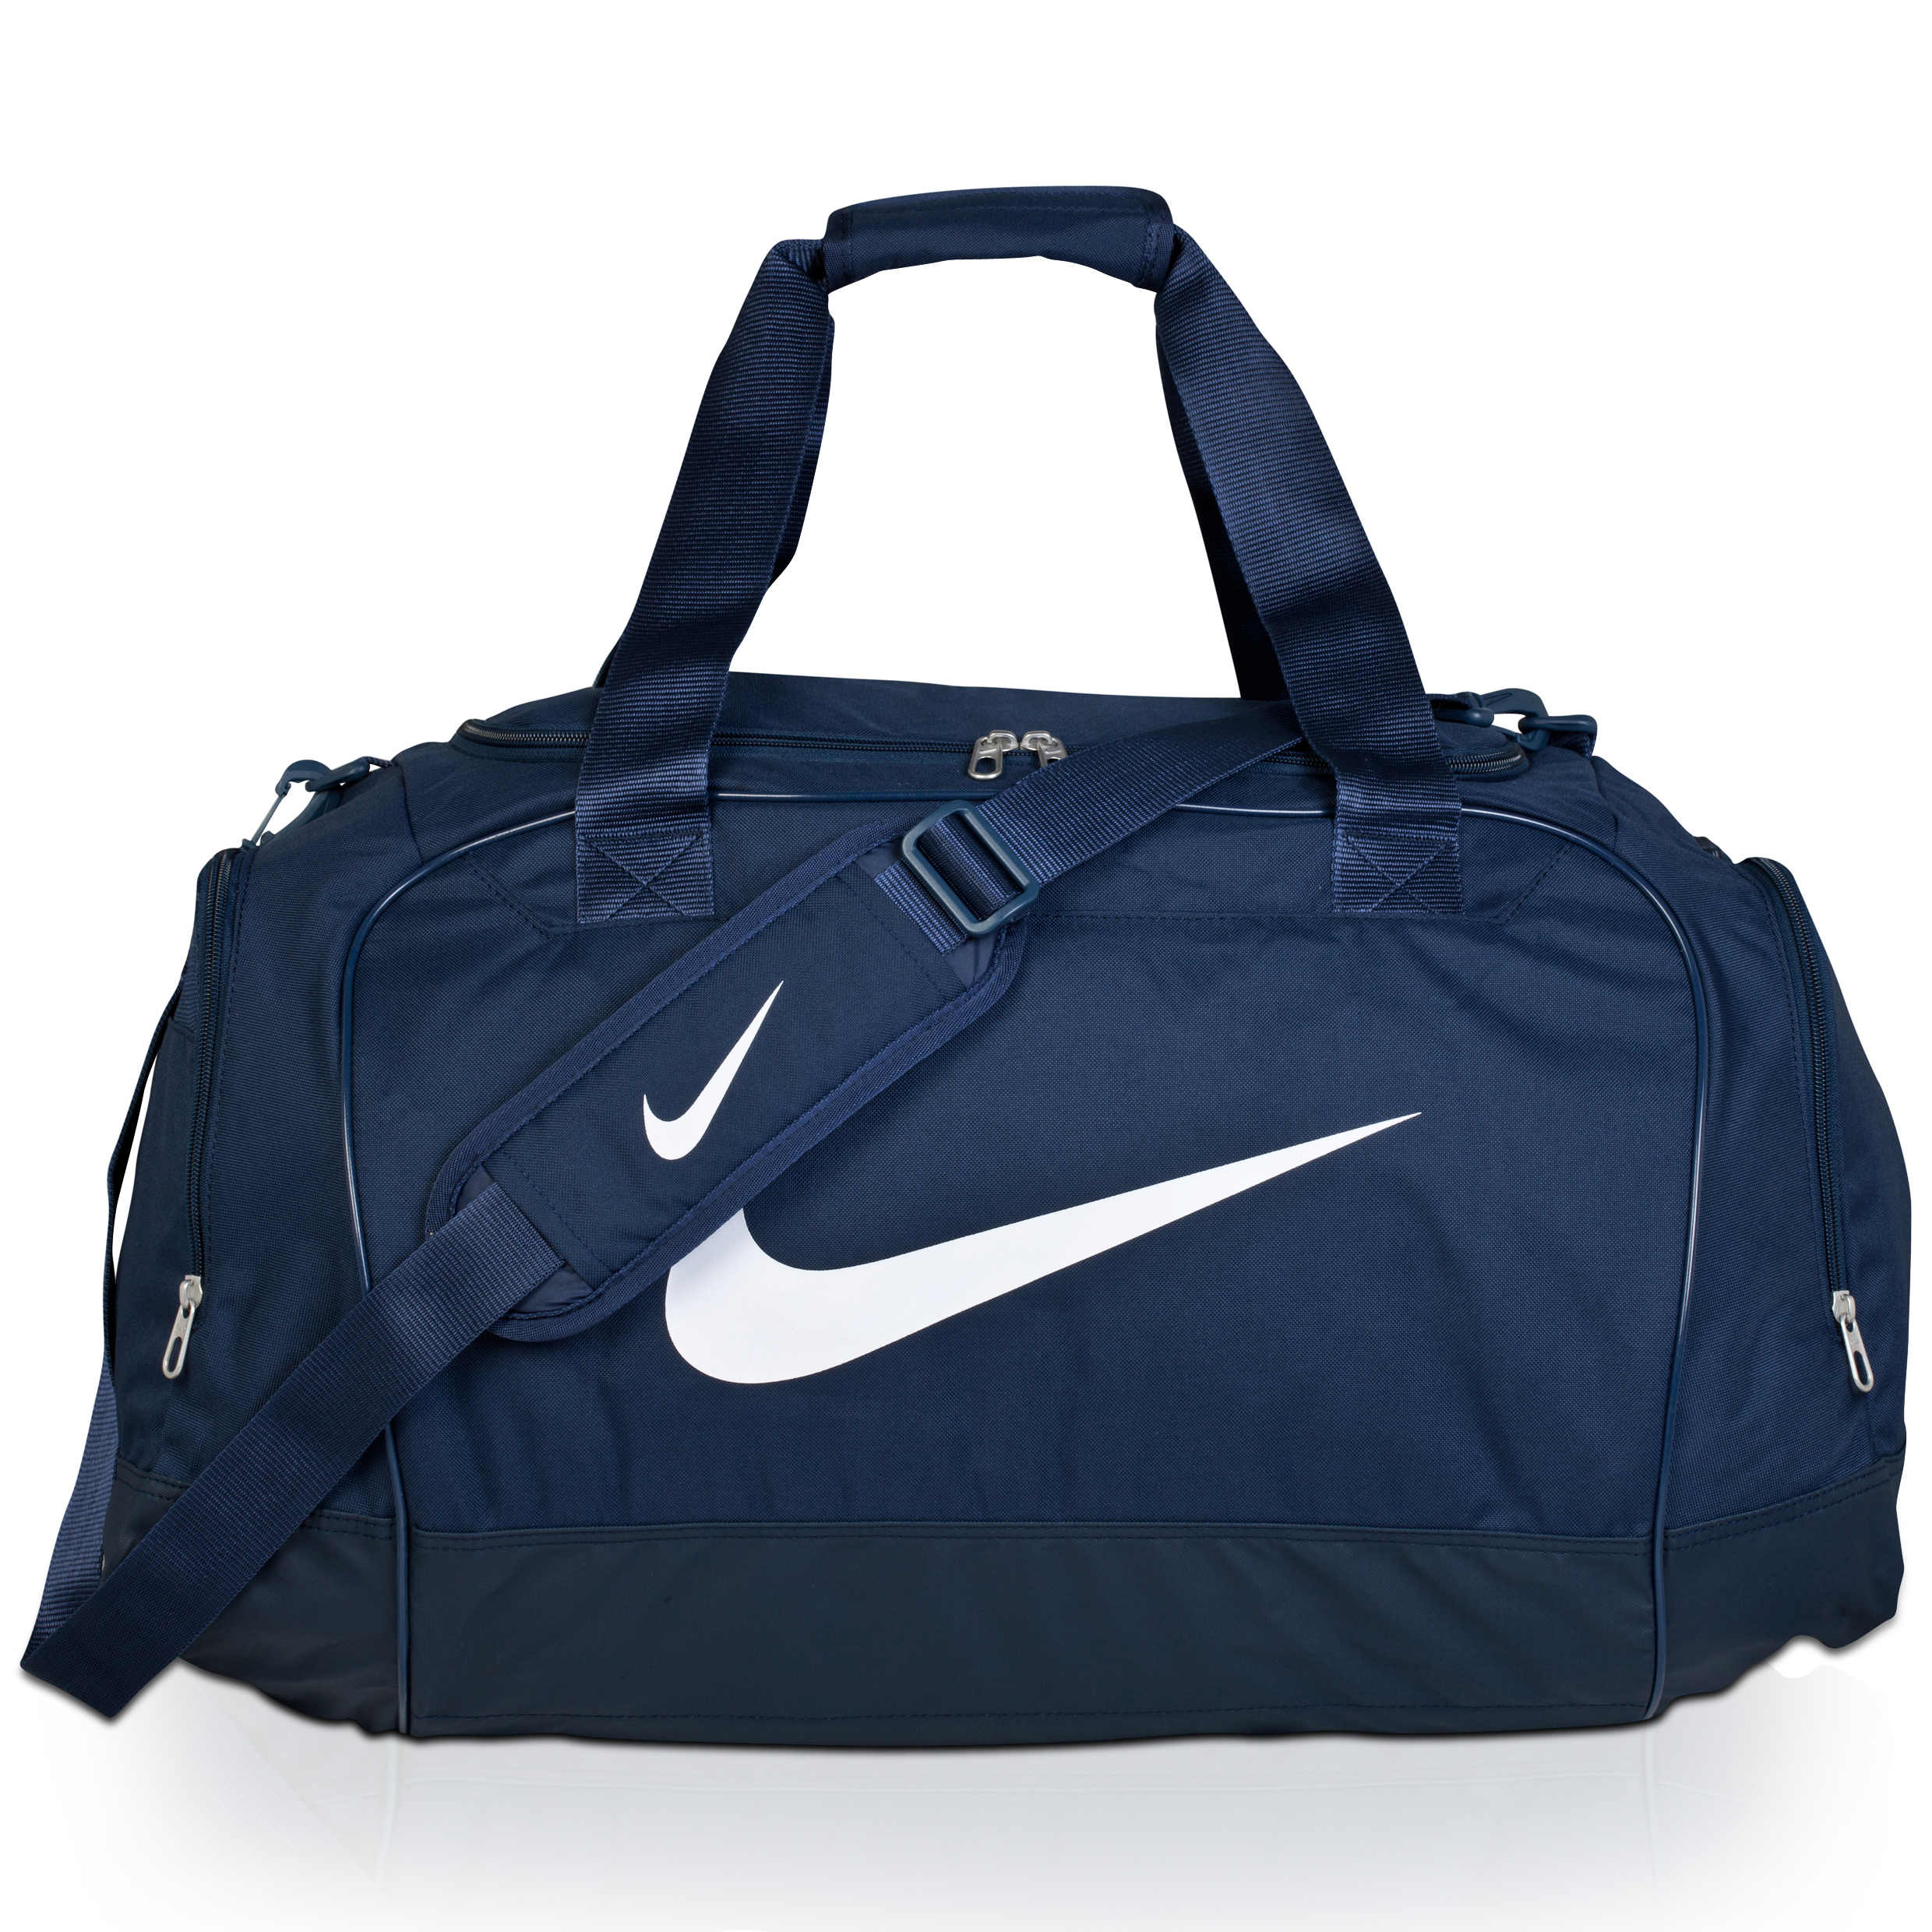 Nike Club Team Large Duffel Bag - Midnight Blue